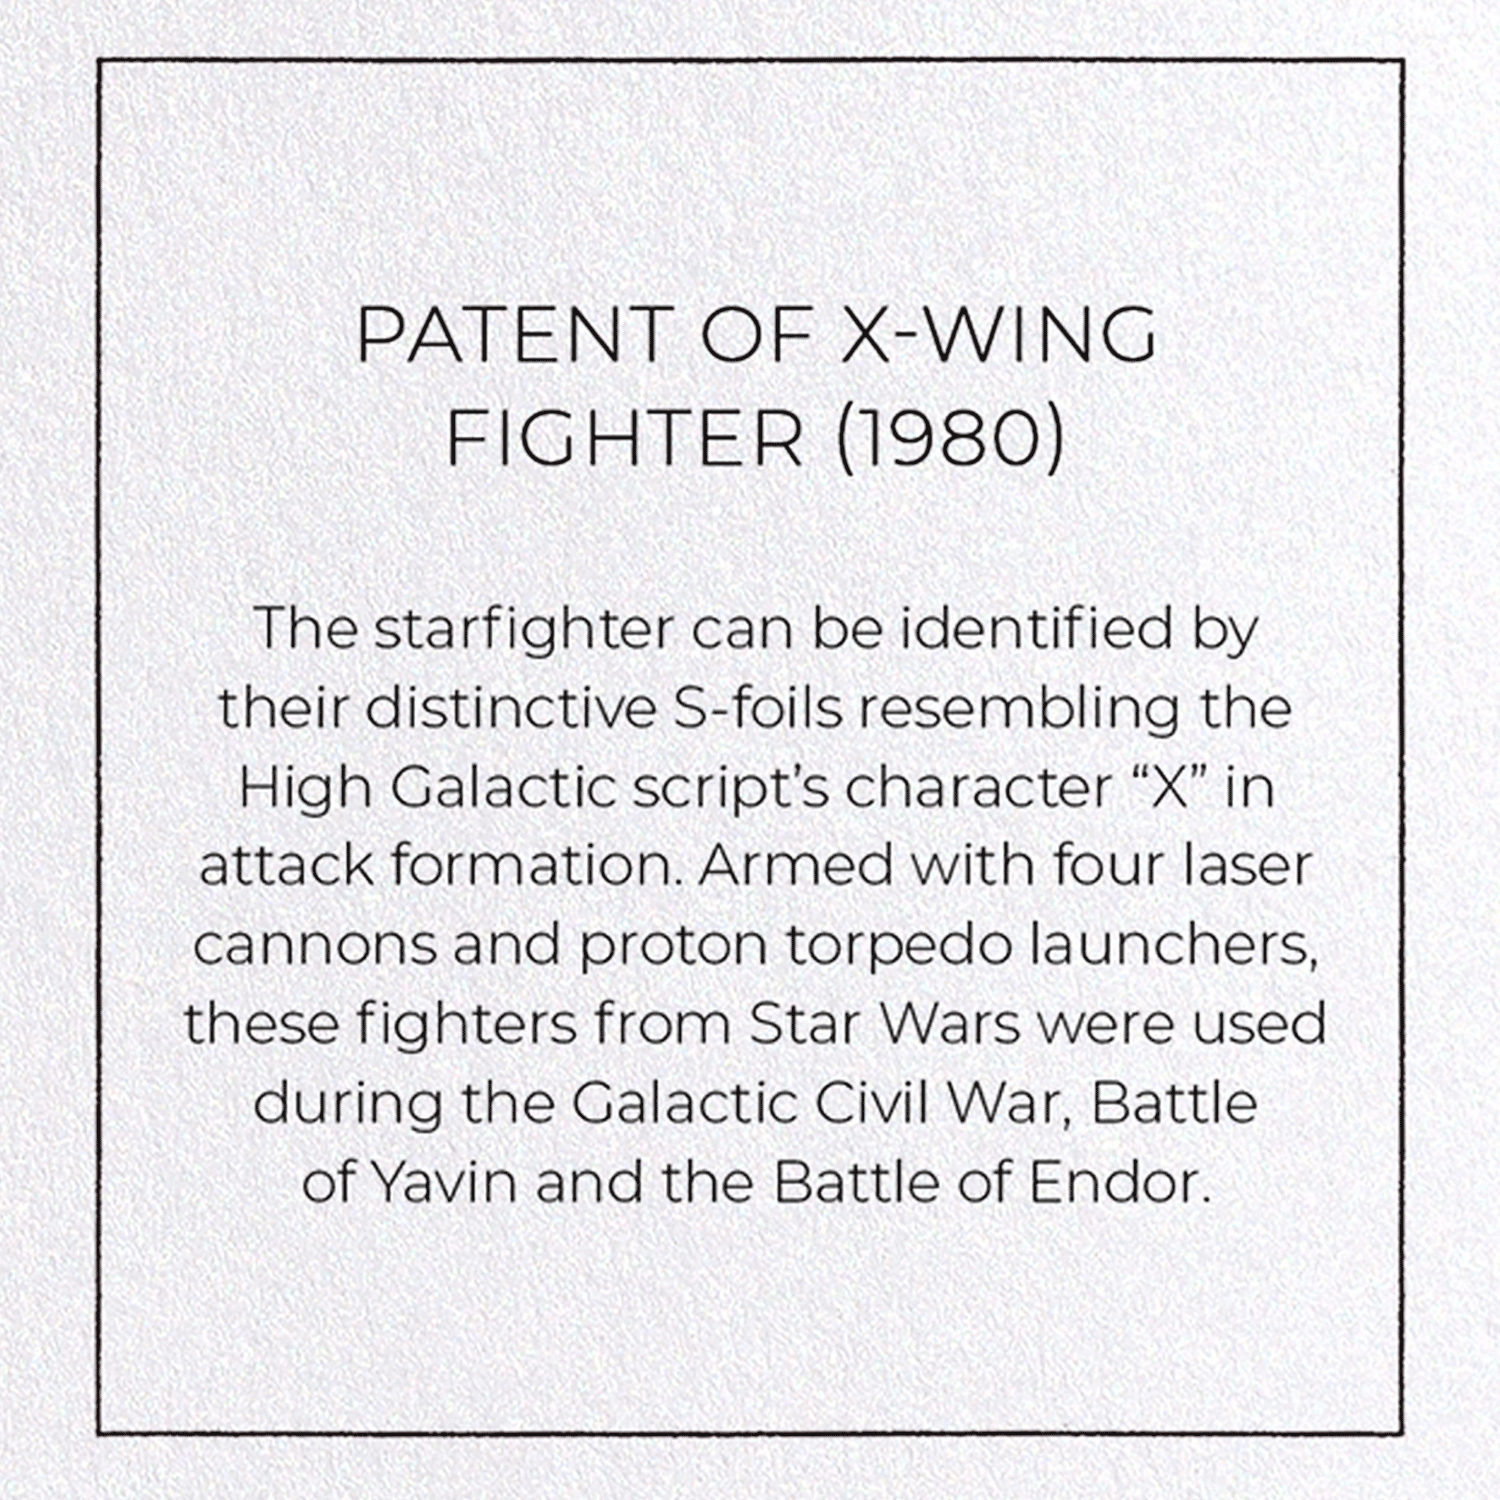 PATENT OF X-WING FIGHTER (1980): 8xCards